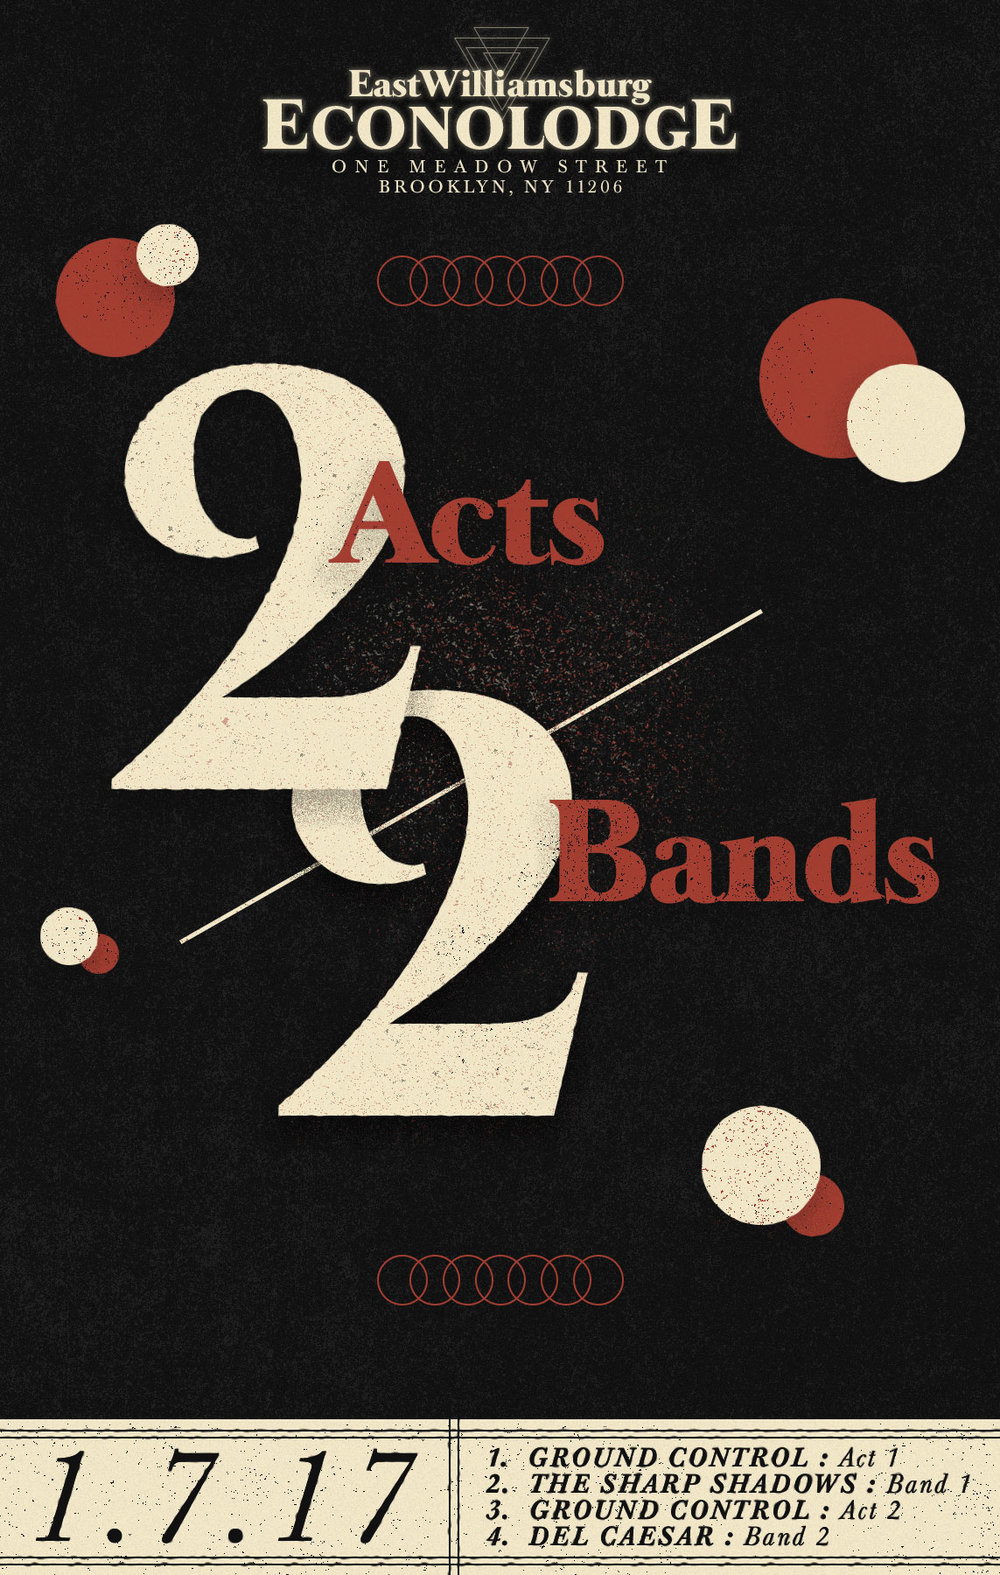 2Acts-2Bands-3.jpg